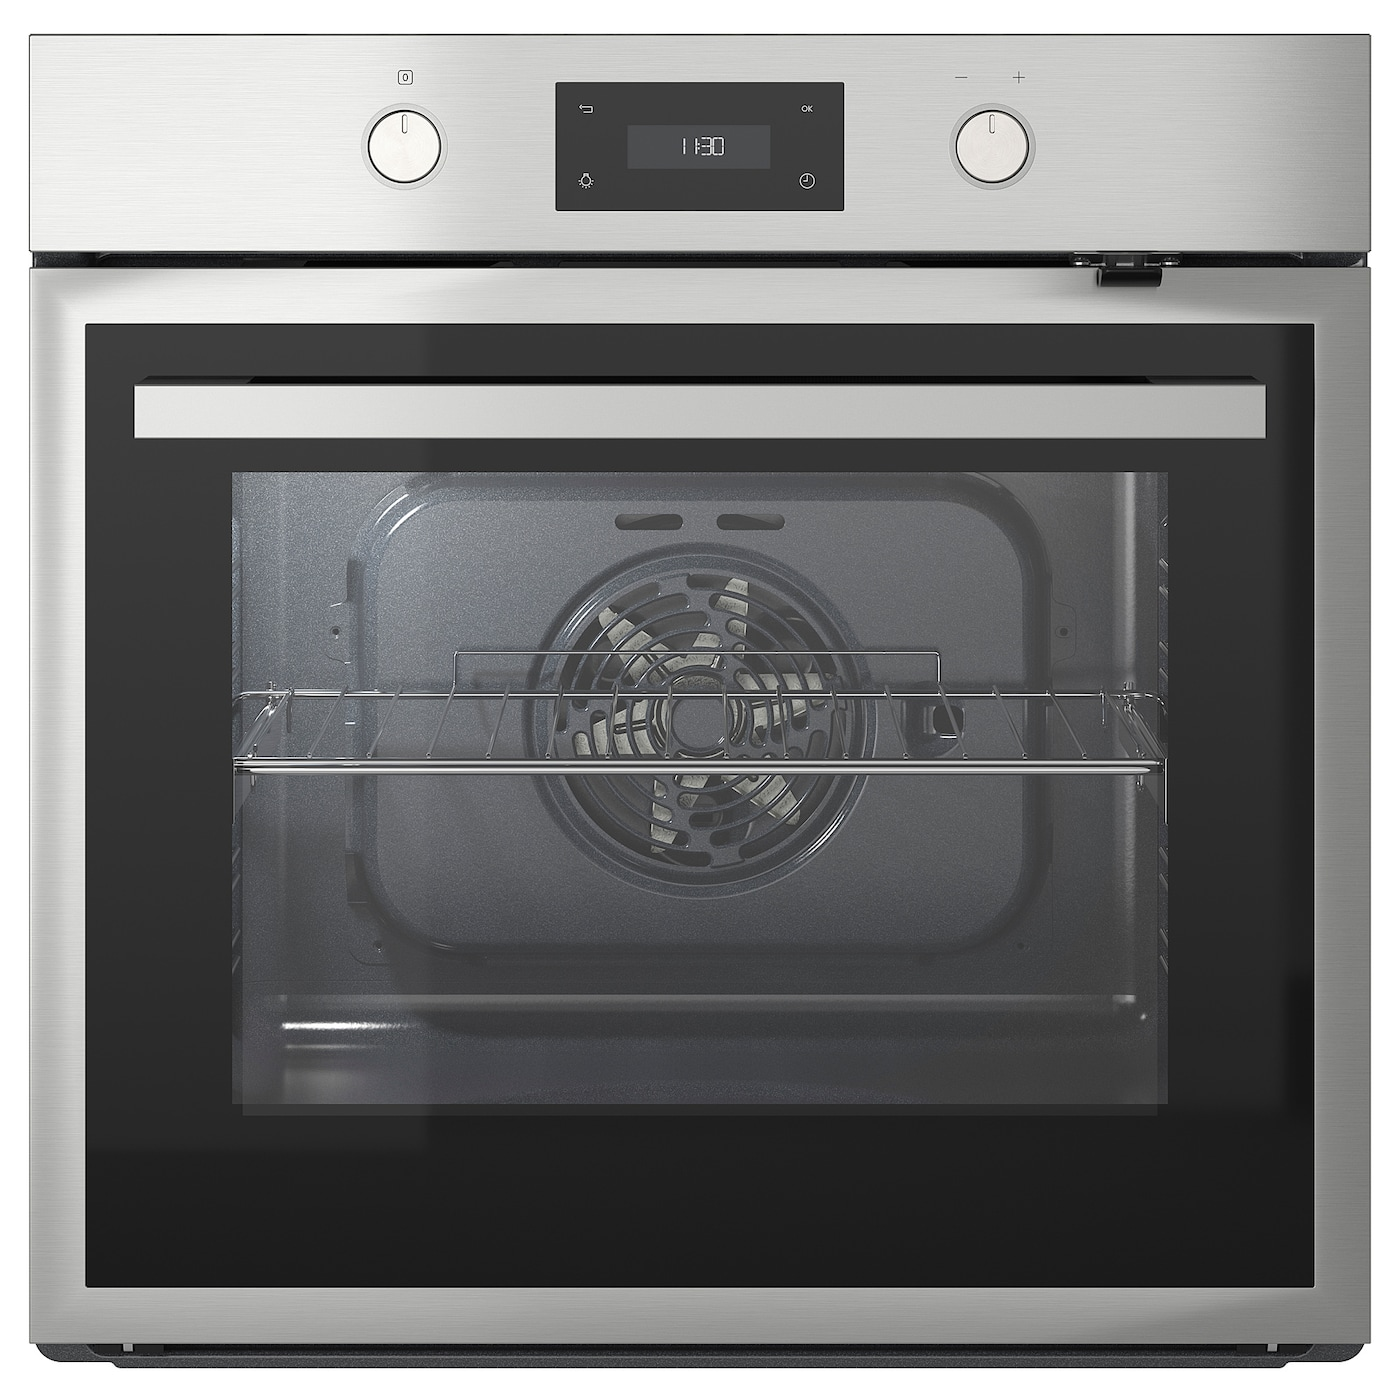 Anr Tta Forced Air Oven Stainless Steel Ikea